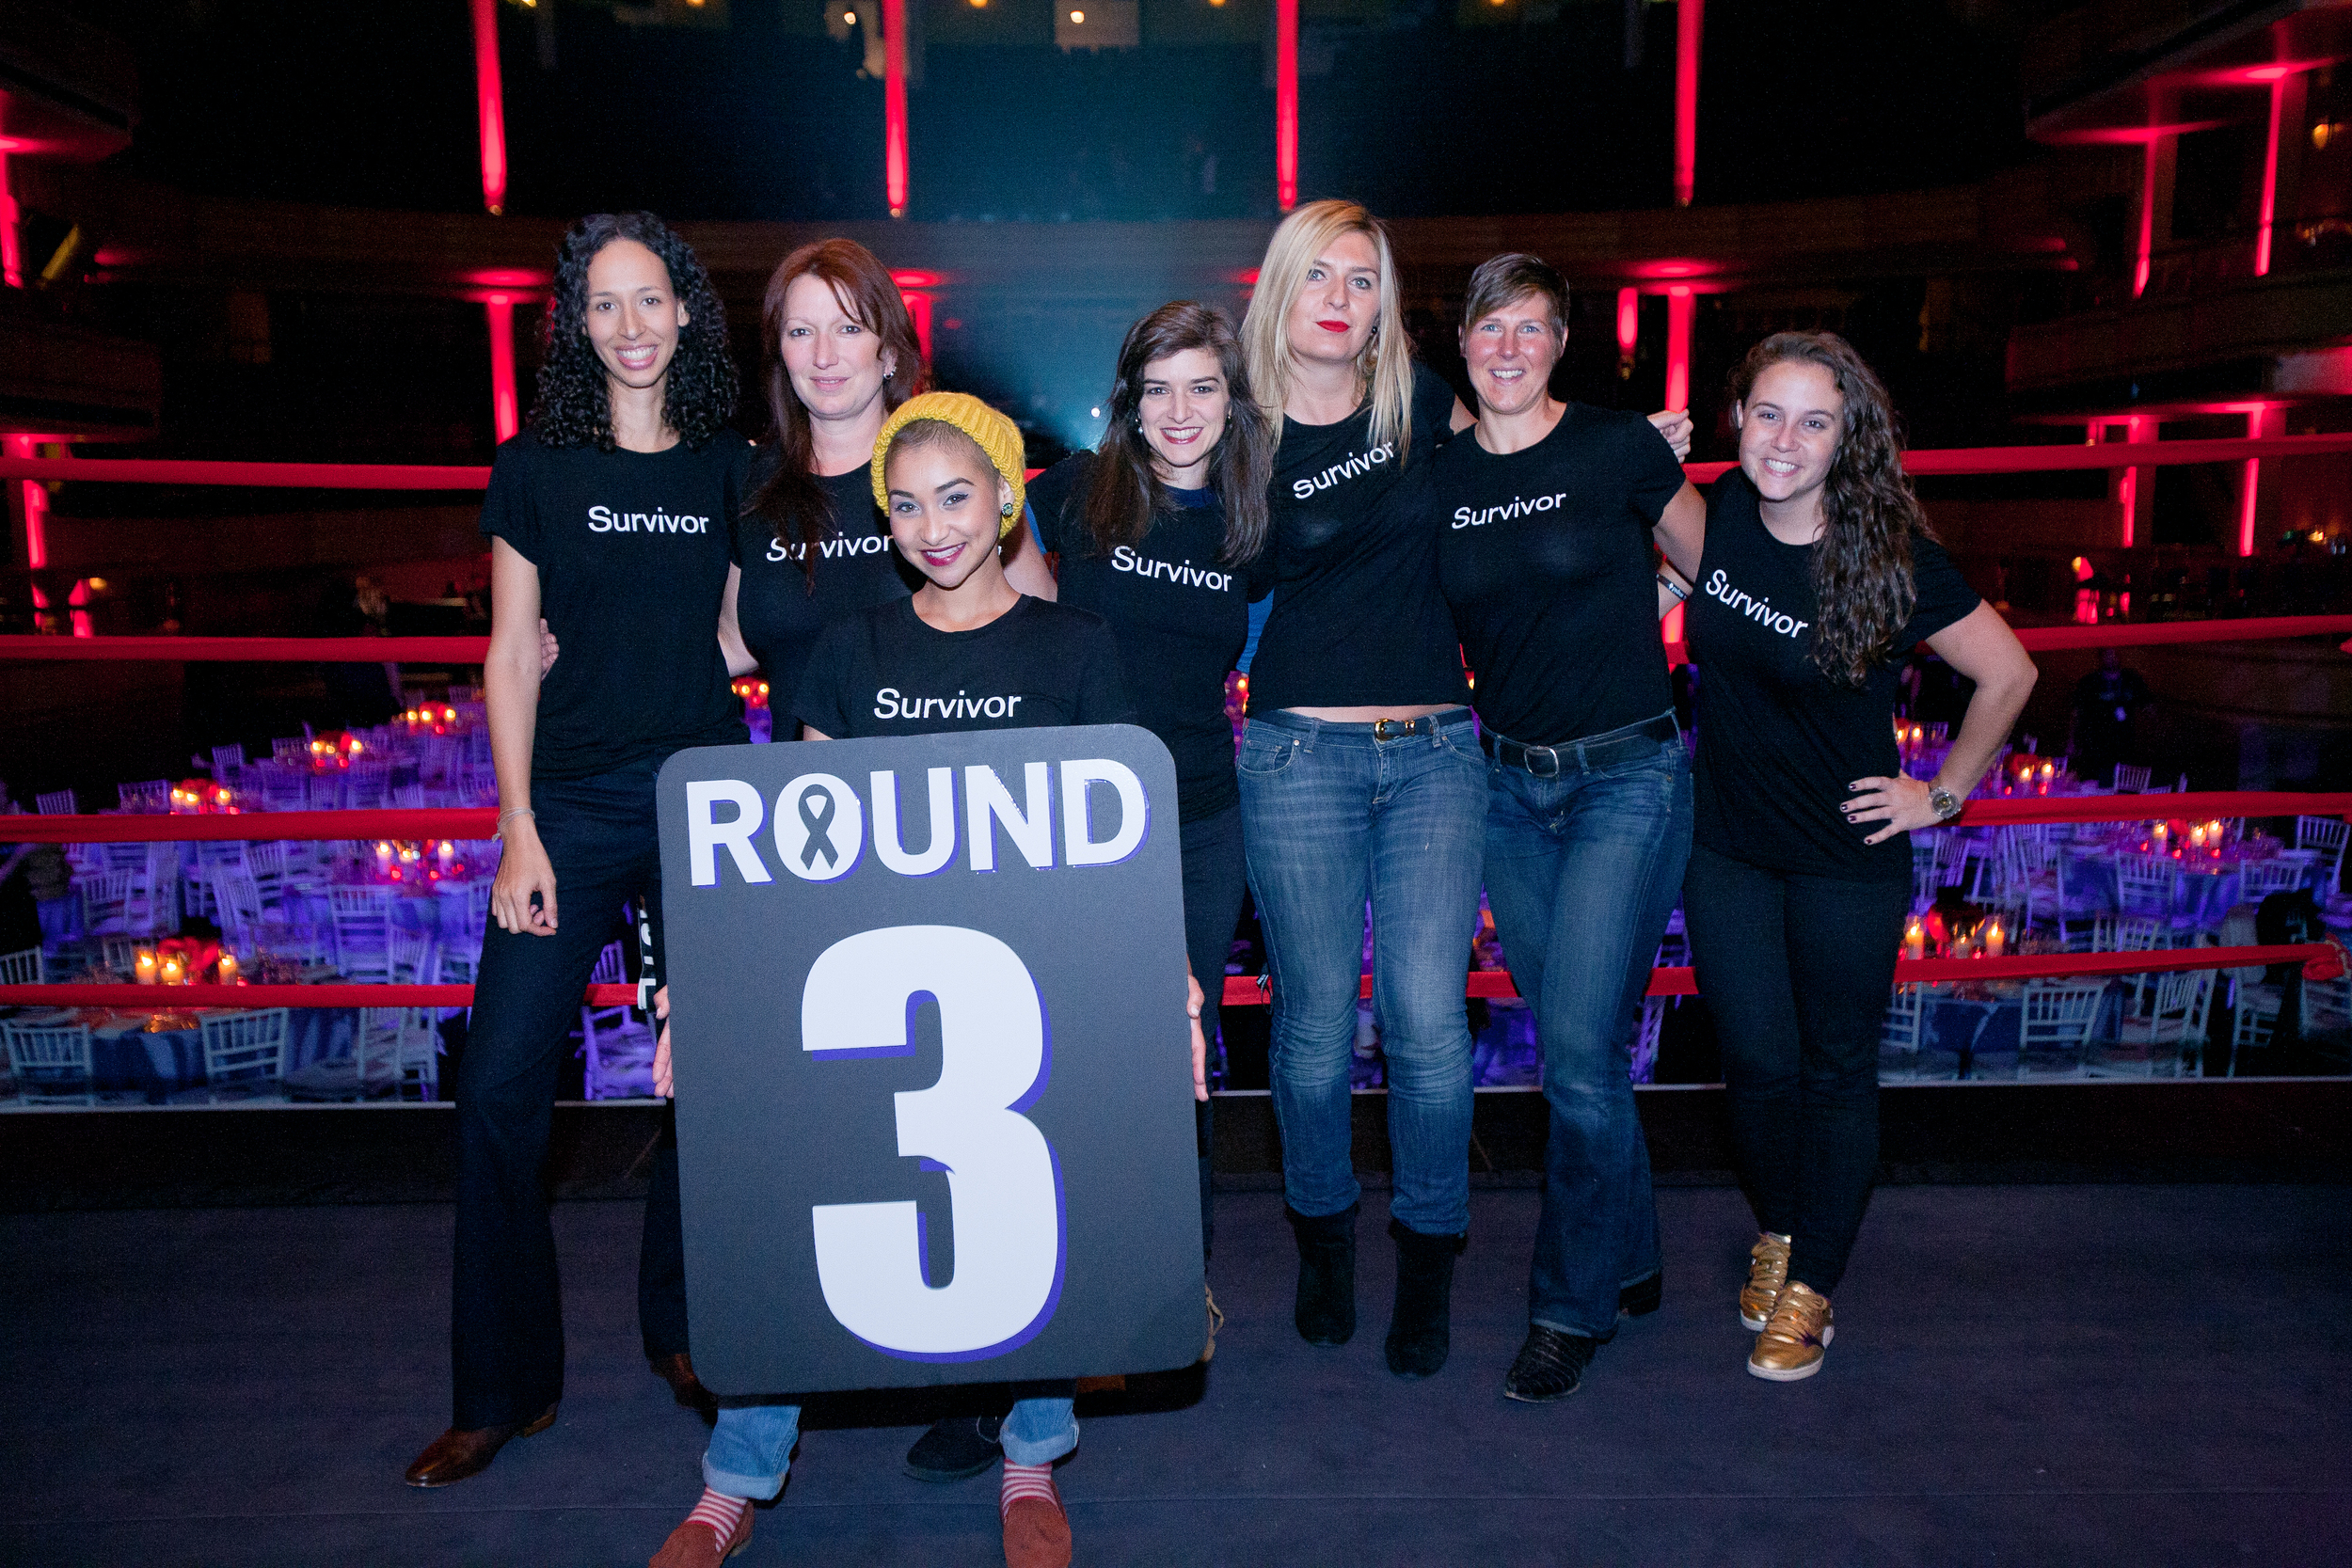 Cancer survivors acted as the night's ring girls, announcing each round. 